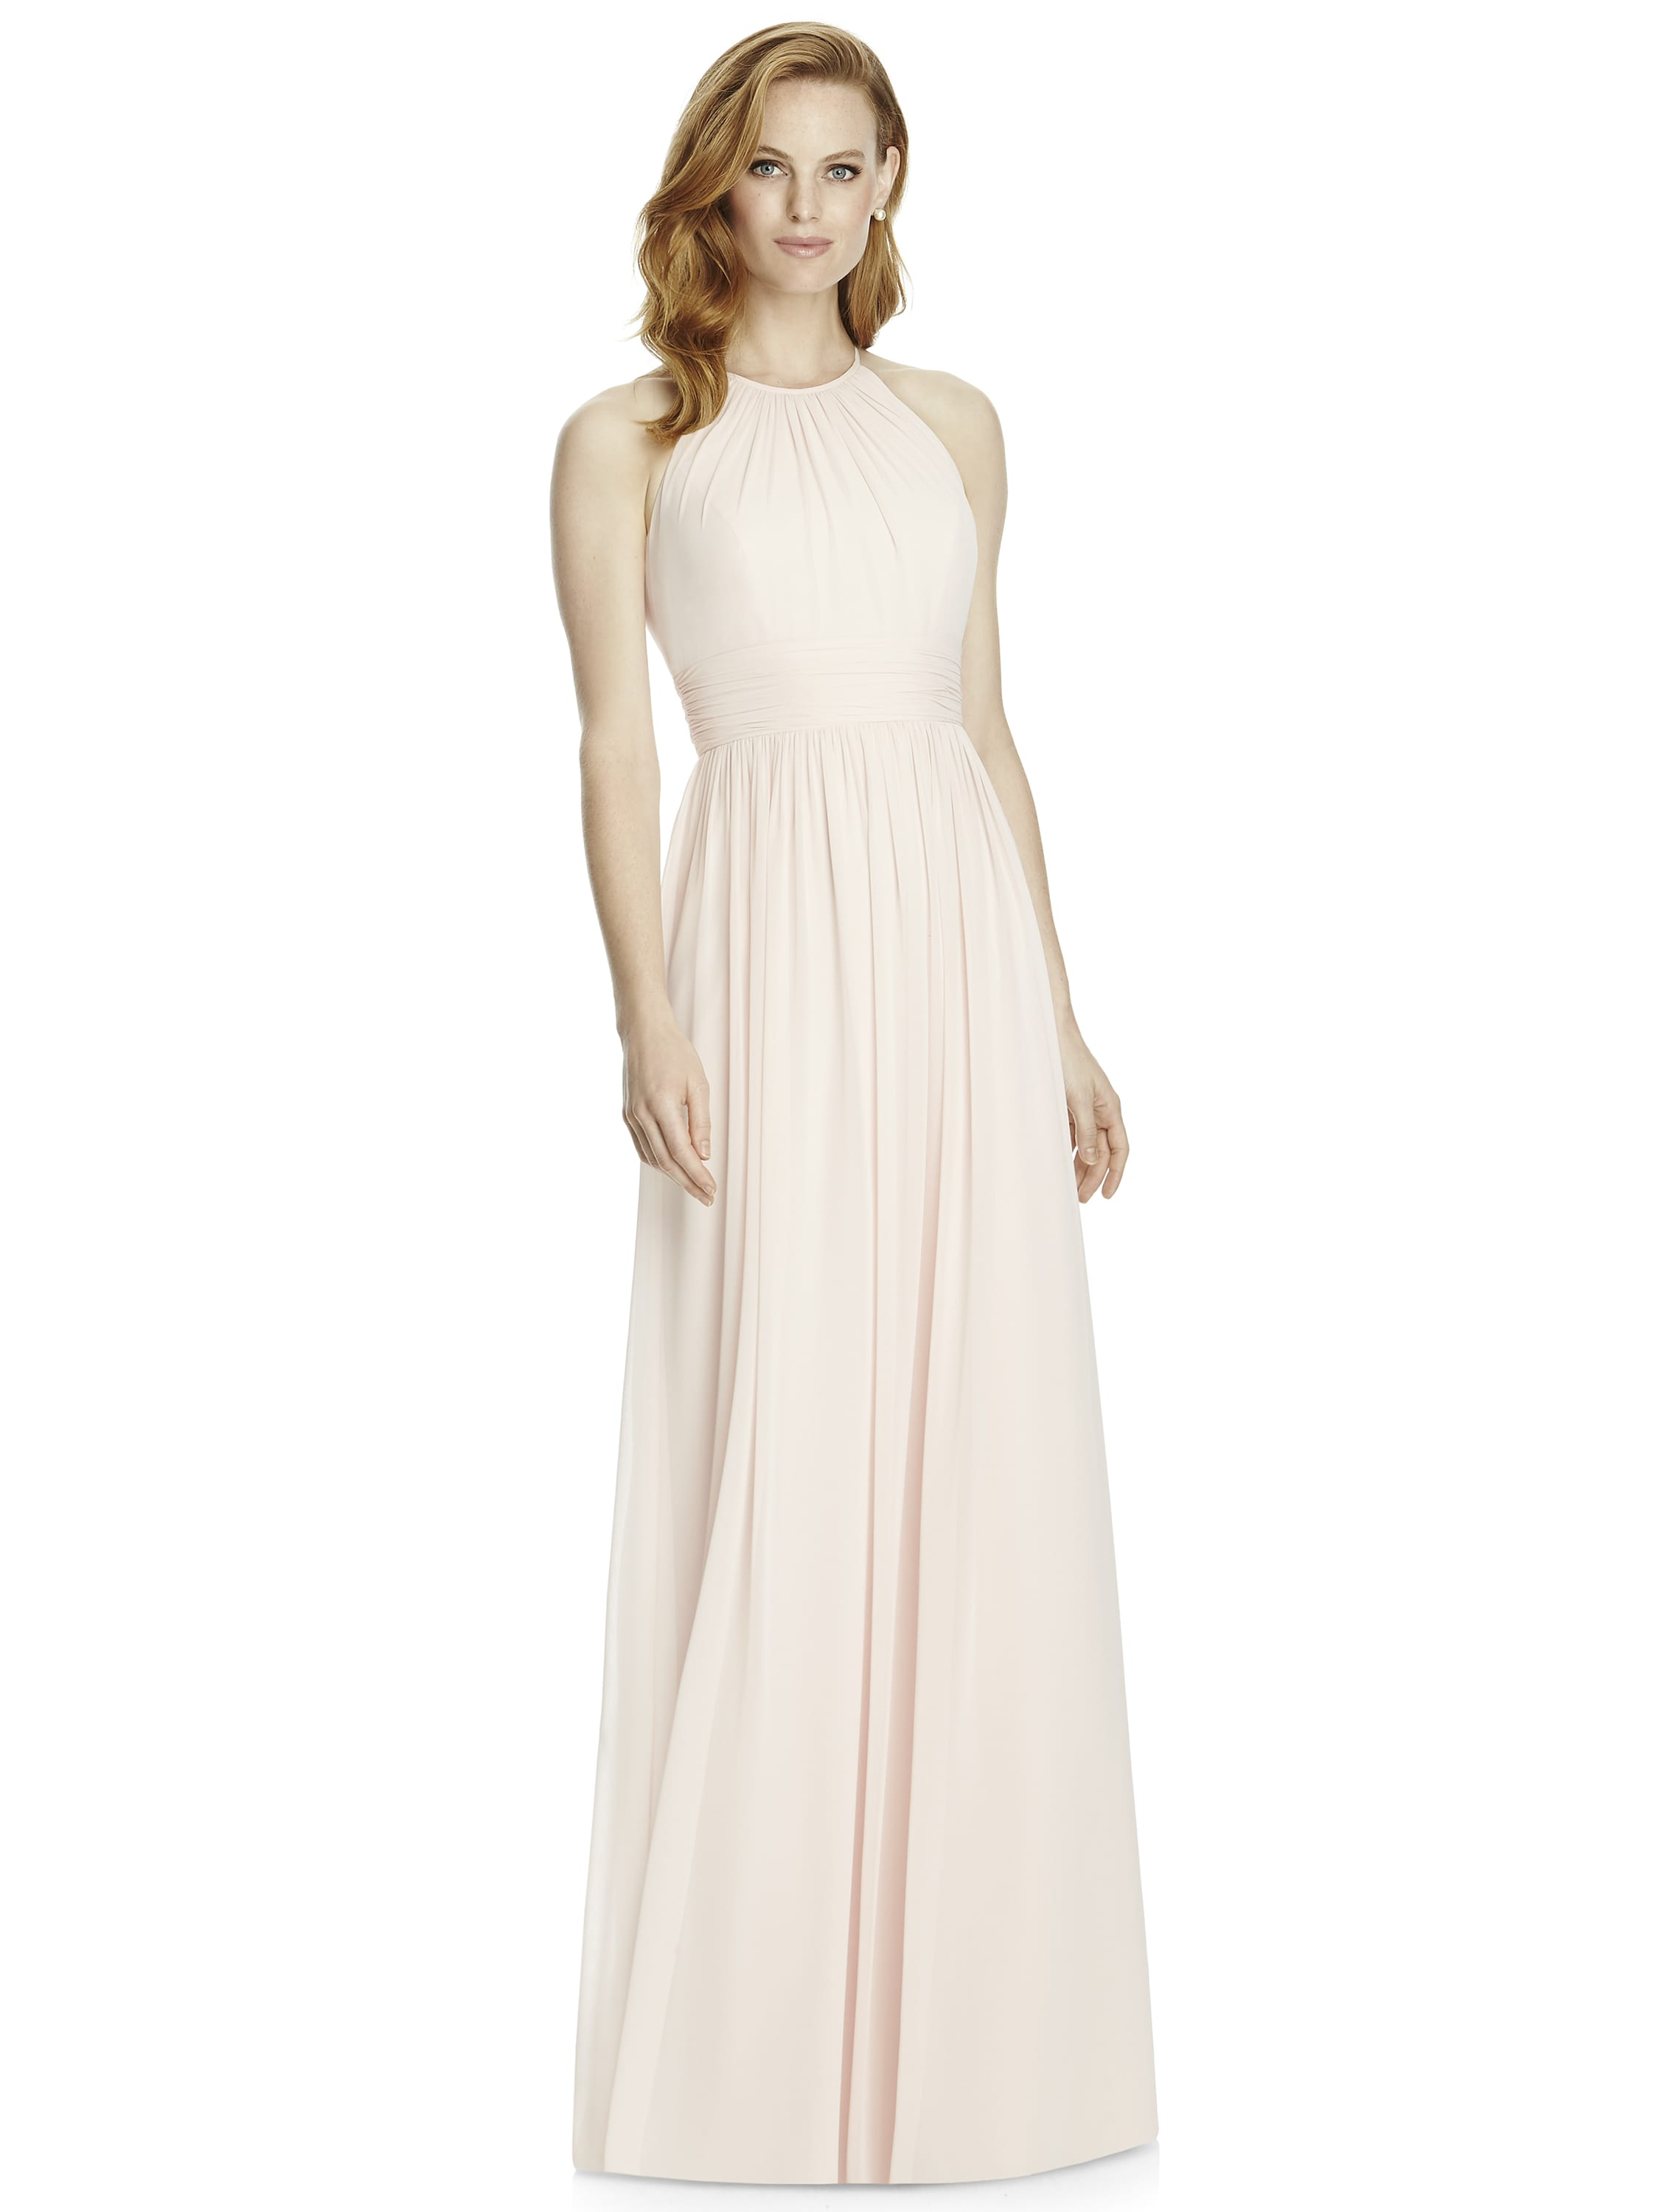 Studio Design by Dessy Group style 4511 in ivory chiffon